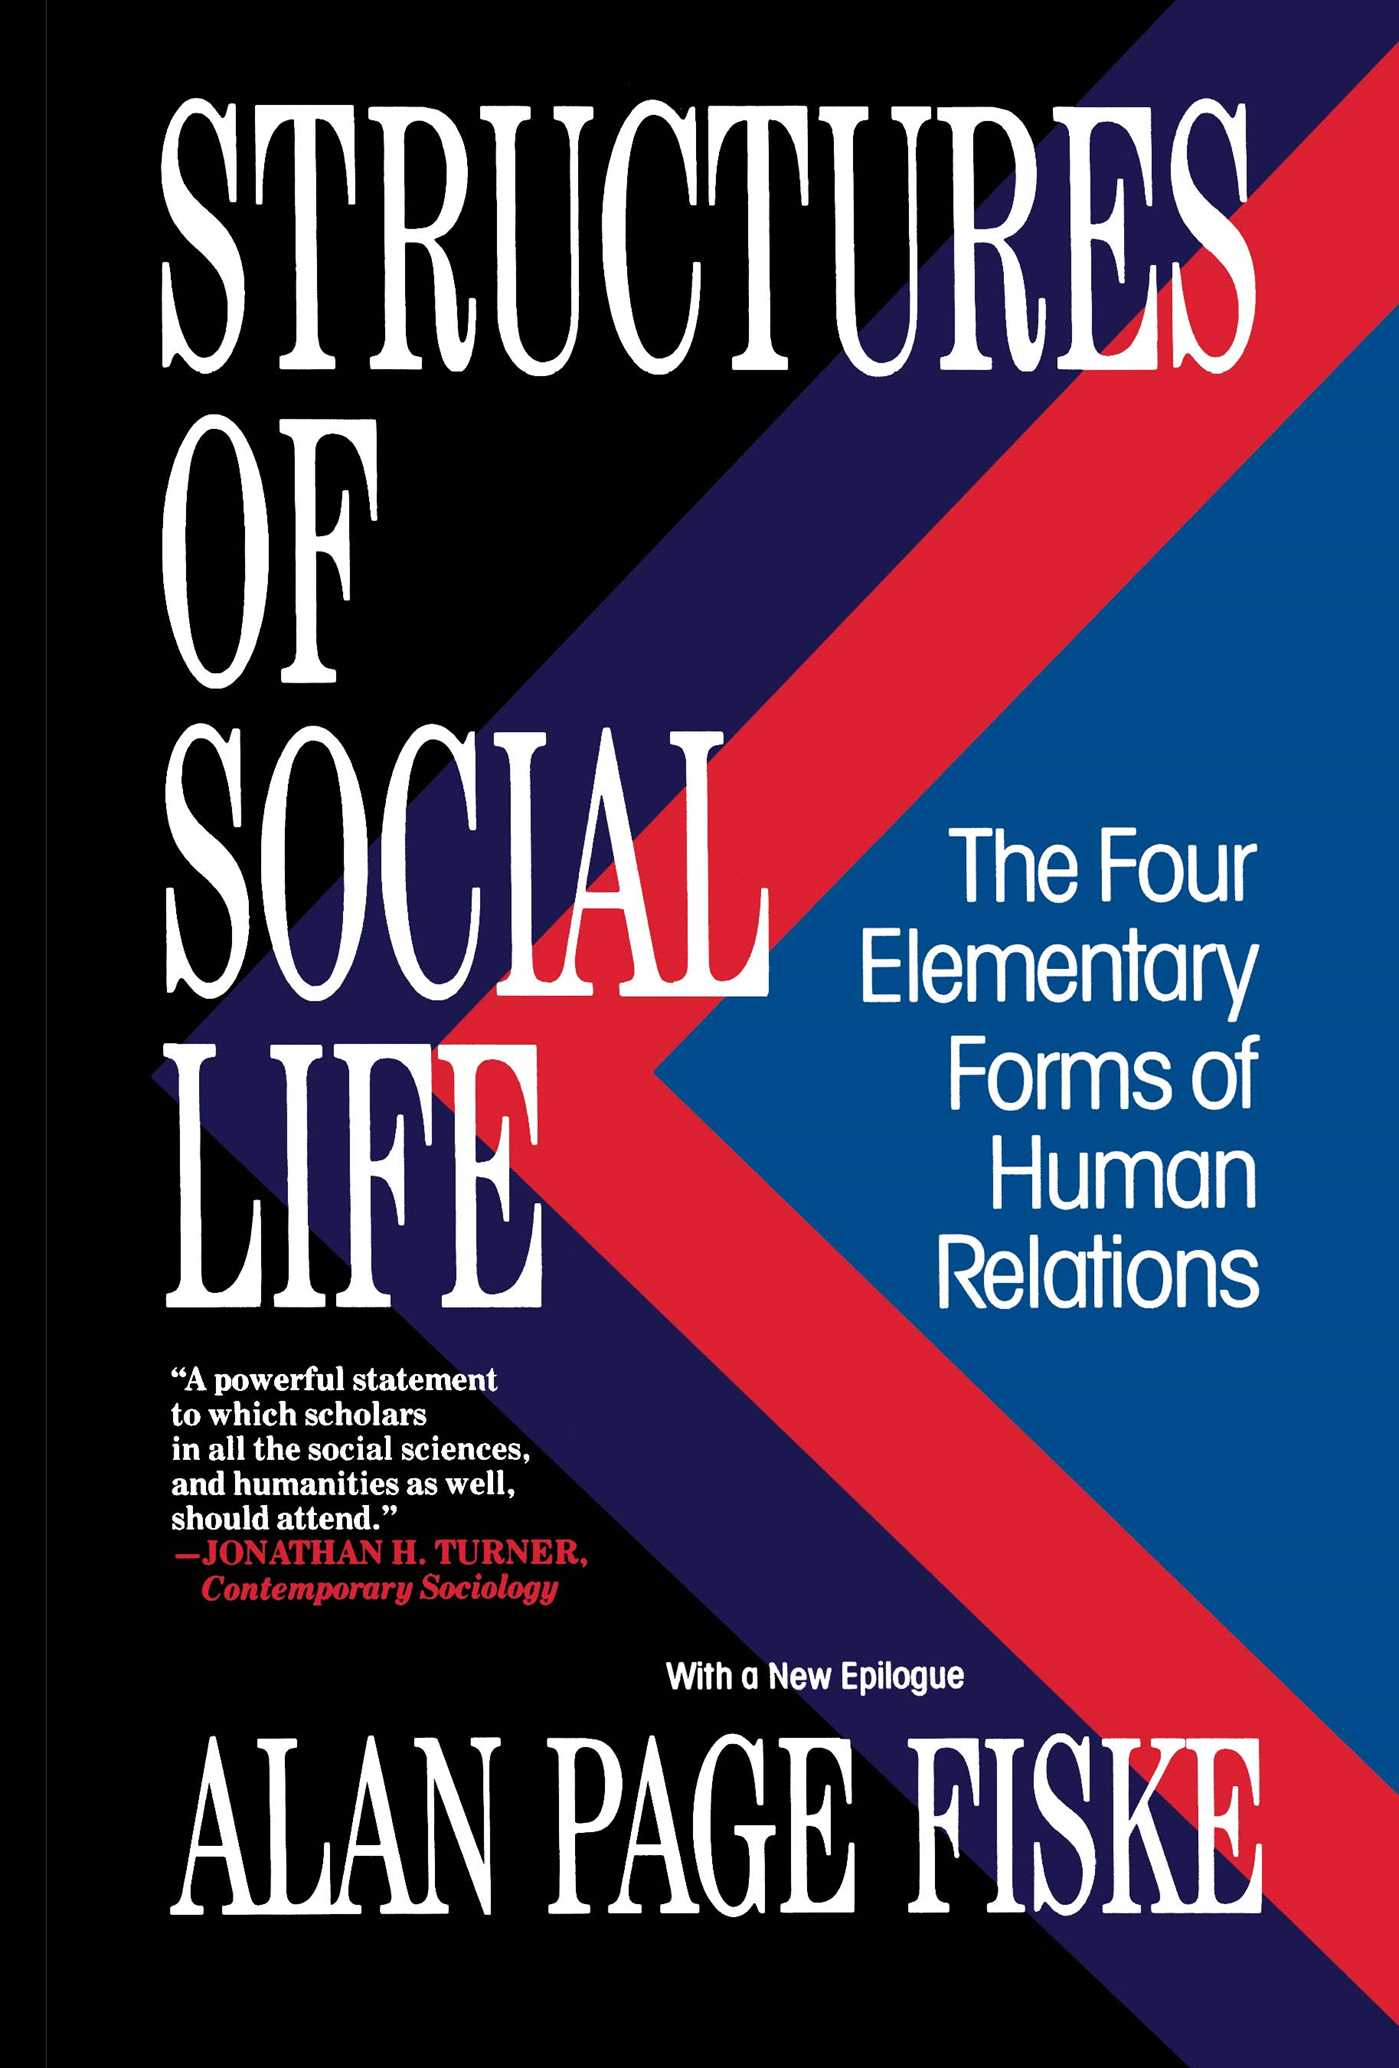 Structures-of-social-life-9780029066874_hr